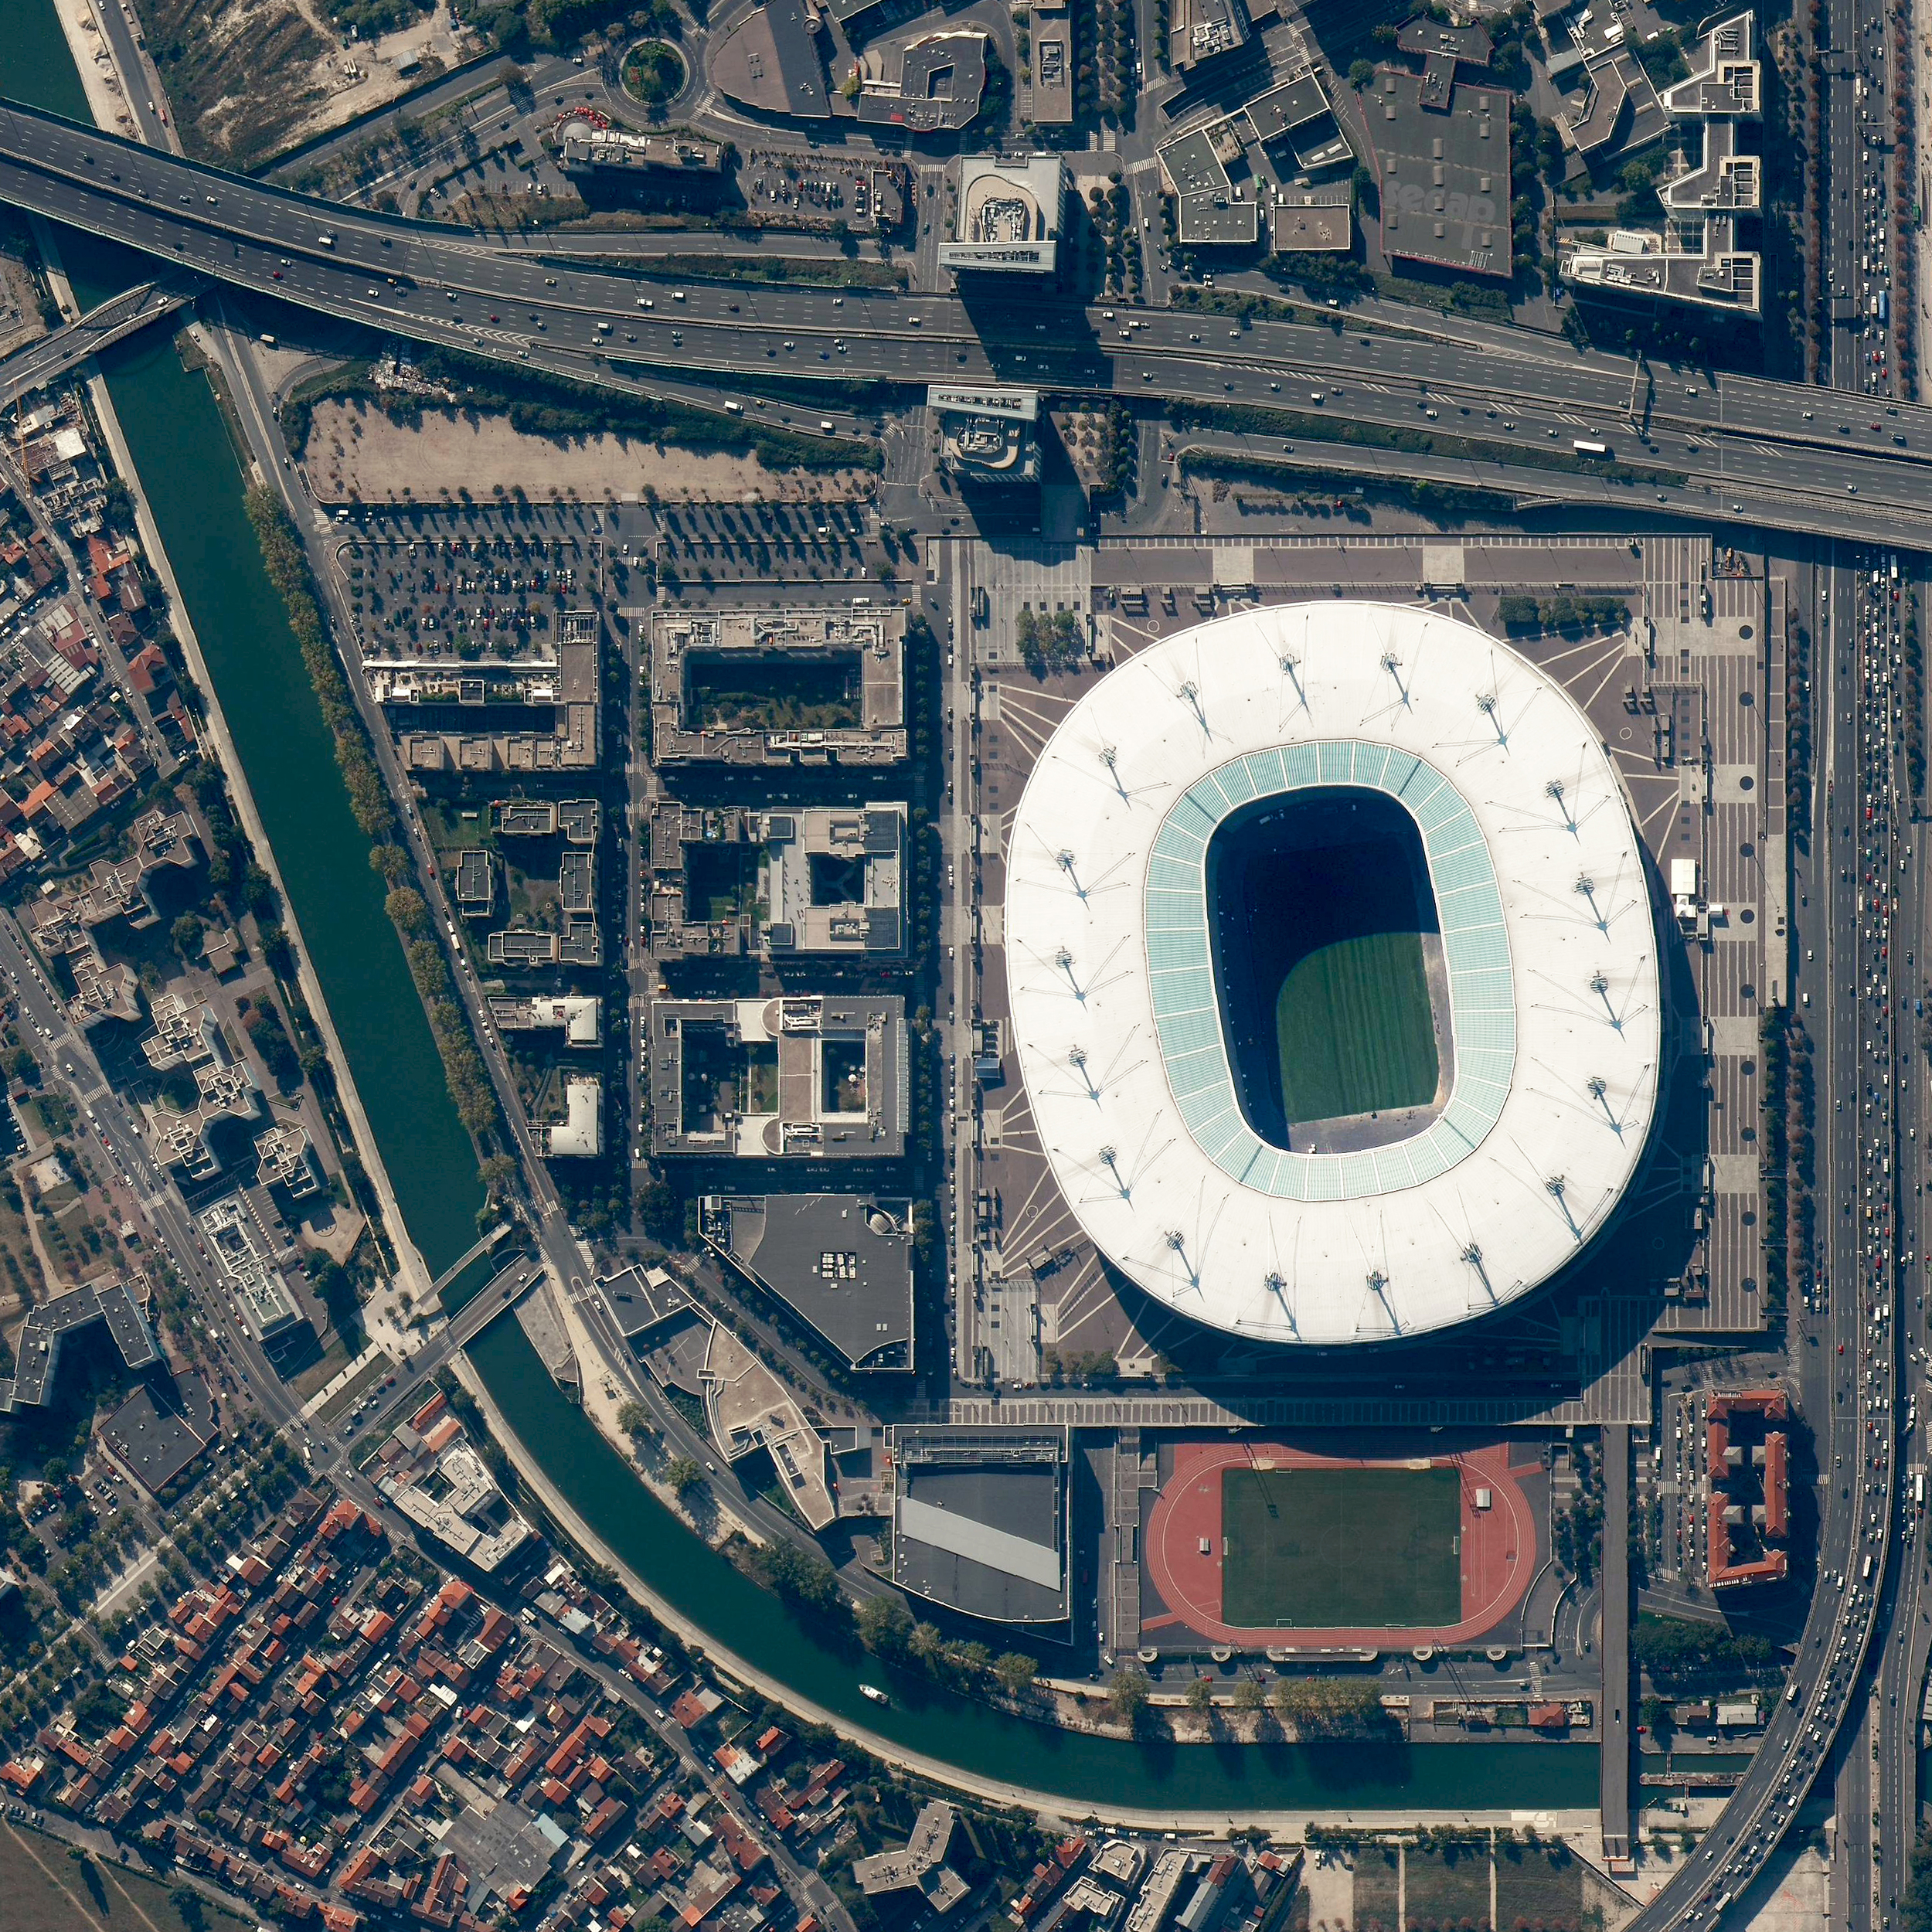 7/10/2016   Stade de France   Saint Denis, France  48°55′28″N 2°21′36″E     In a less than an hour, France will square off against Portugal in the finals of Euro 2016 — the championship tournament of European football (soccer) that takes place every four years. The match will be played in Stade de France, the nation's largest stadium that has a seating capacity of 81,338. Enjoy the game!